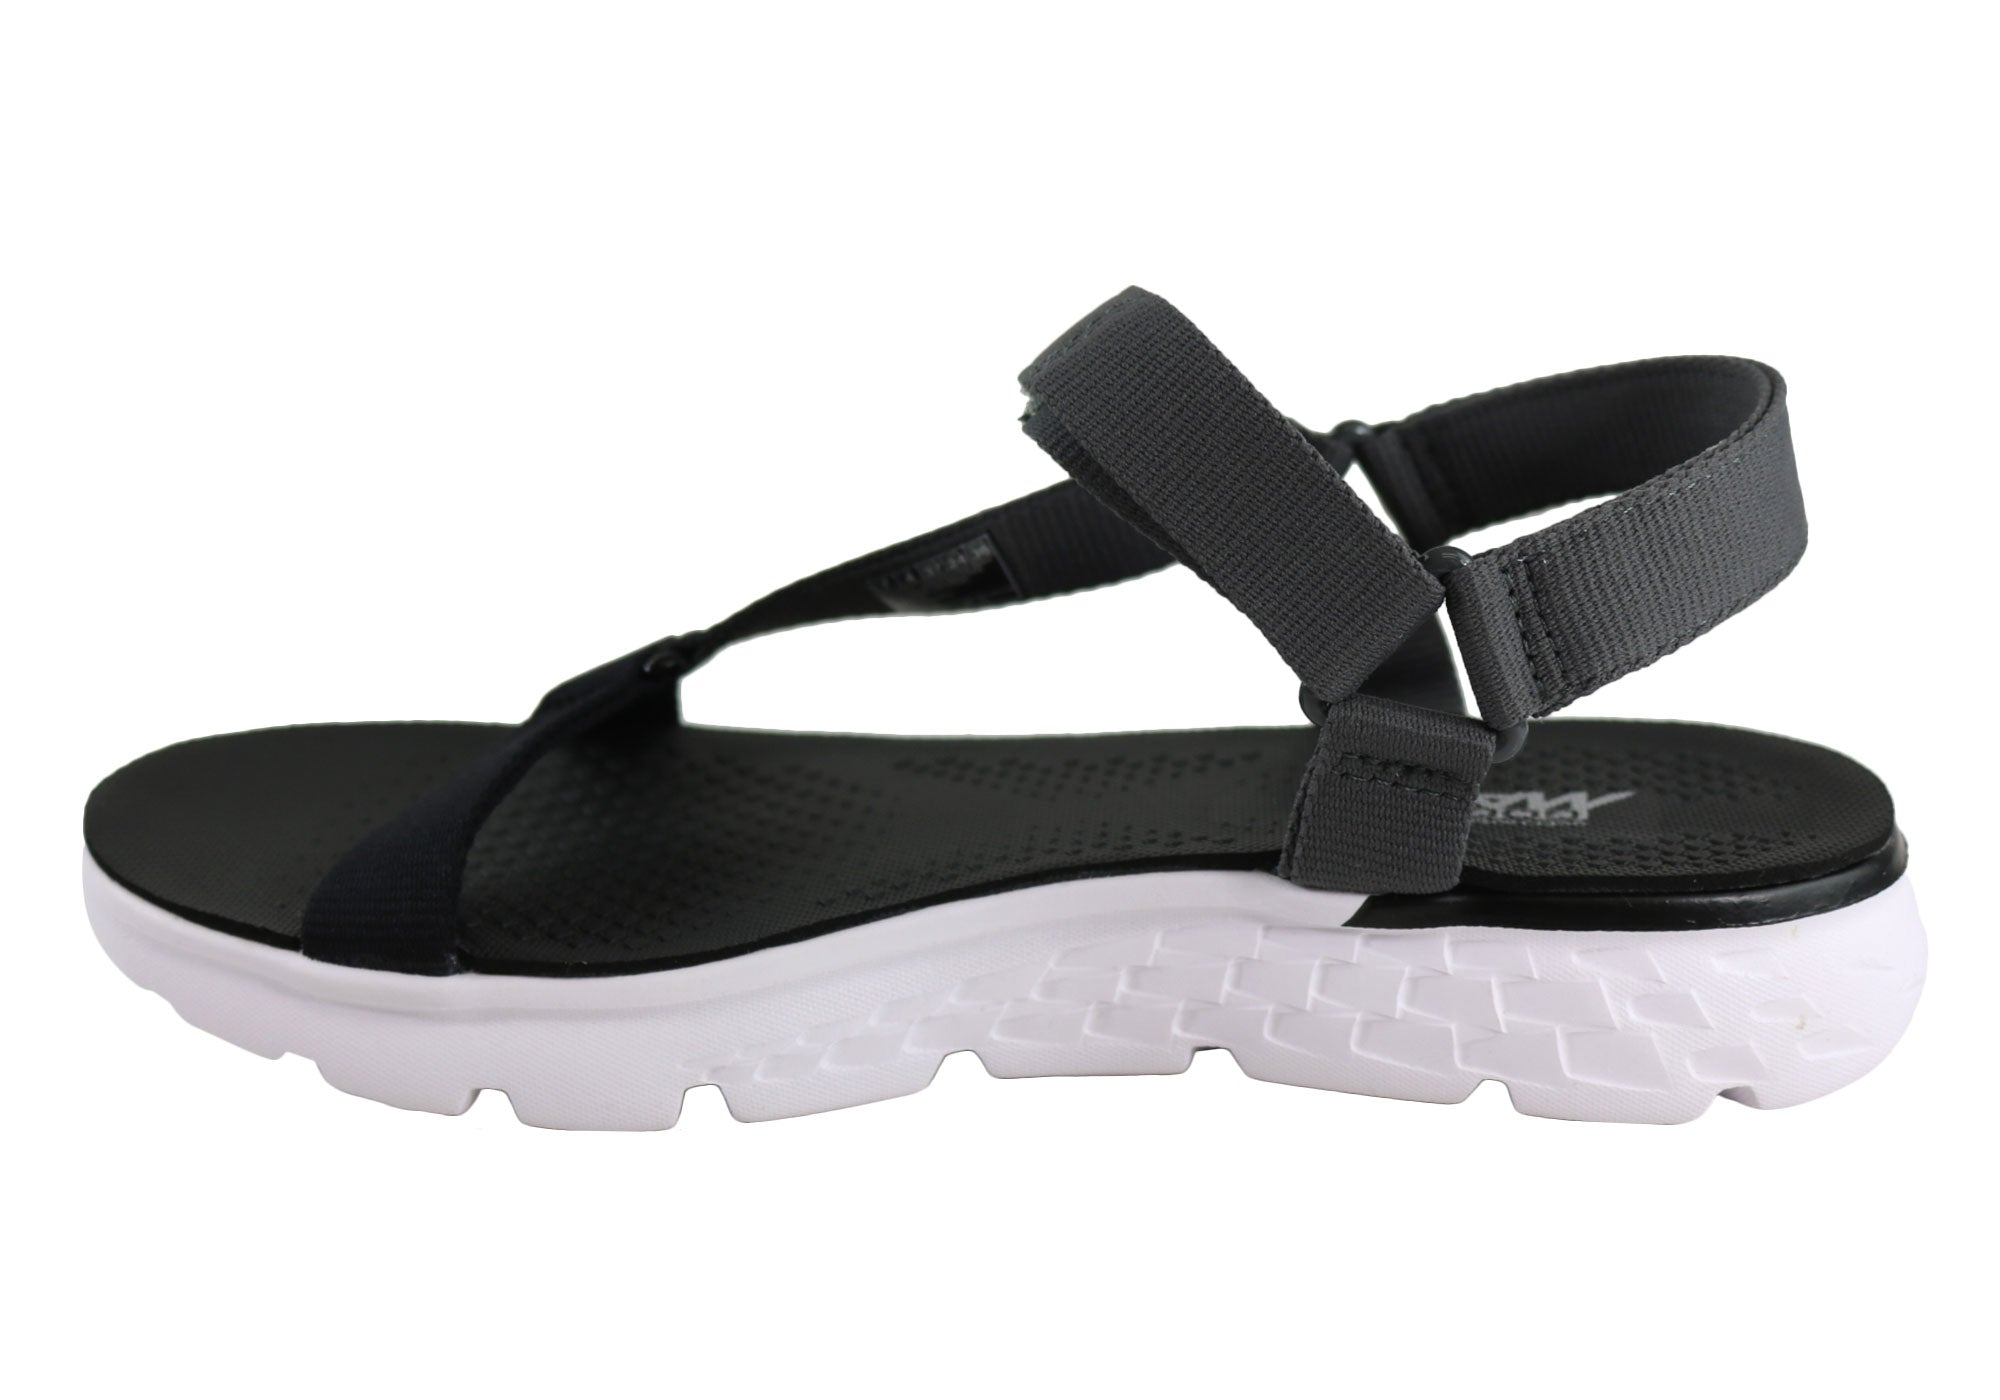 389f240d3691 Home Skechers On The Go 400 Jazzy Womens Comfort Lightweight Sandals. Black Grey  · Black Grey ...